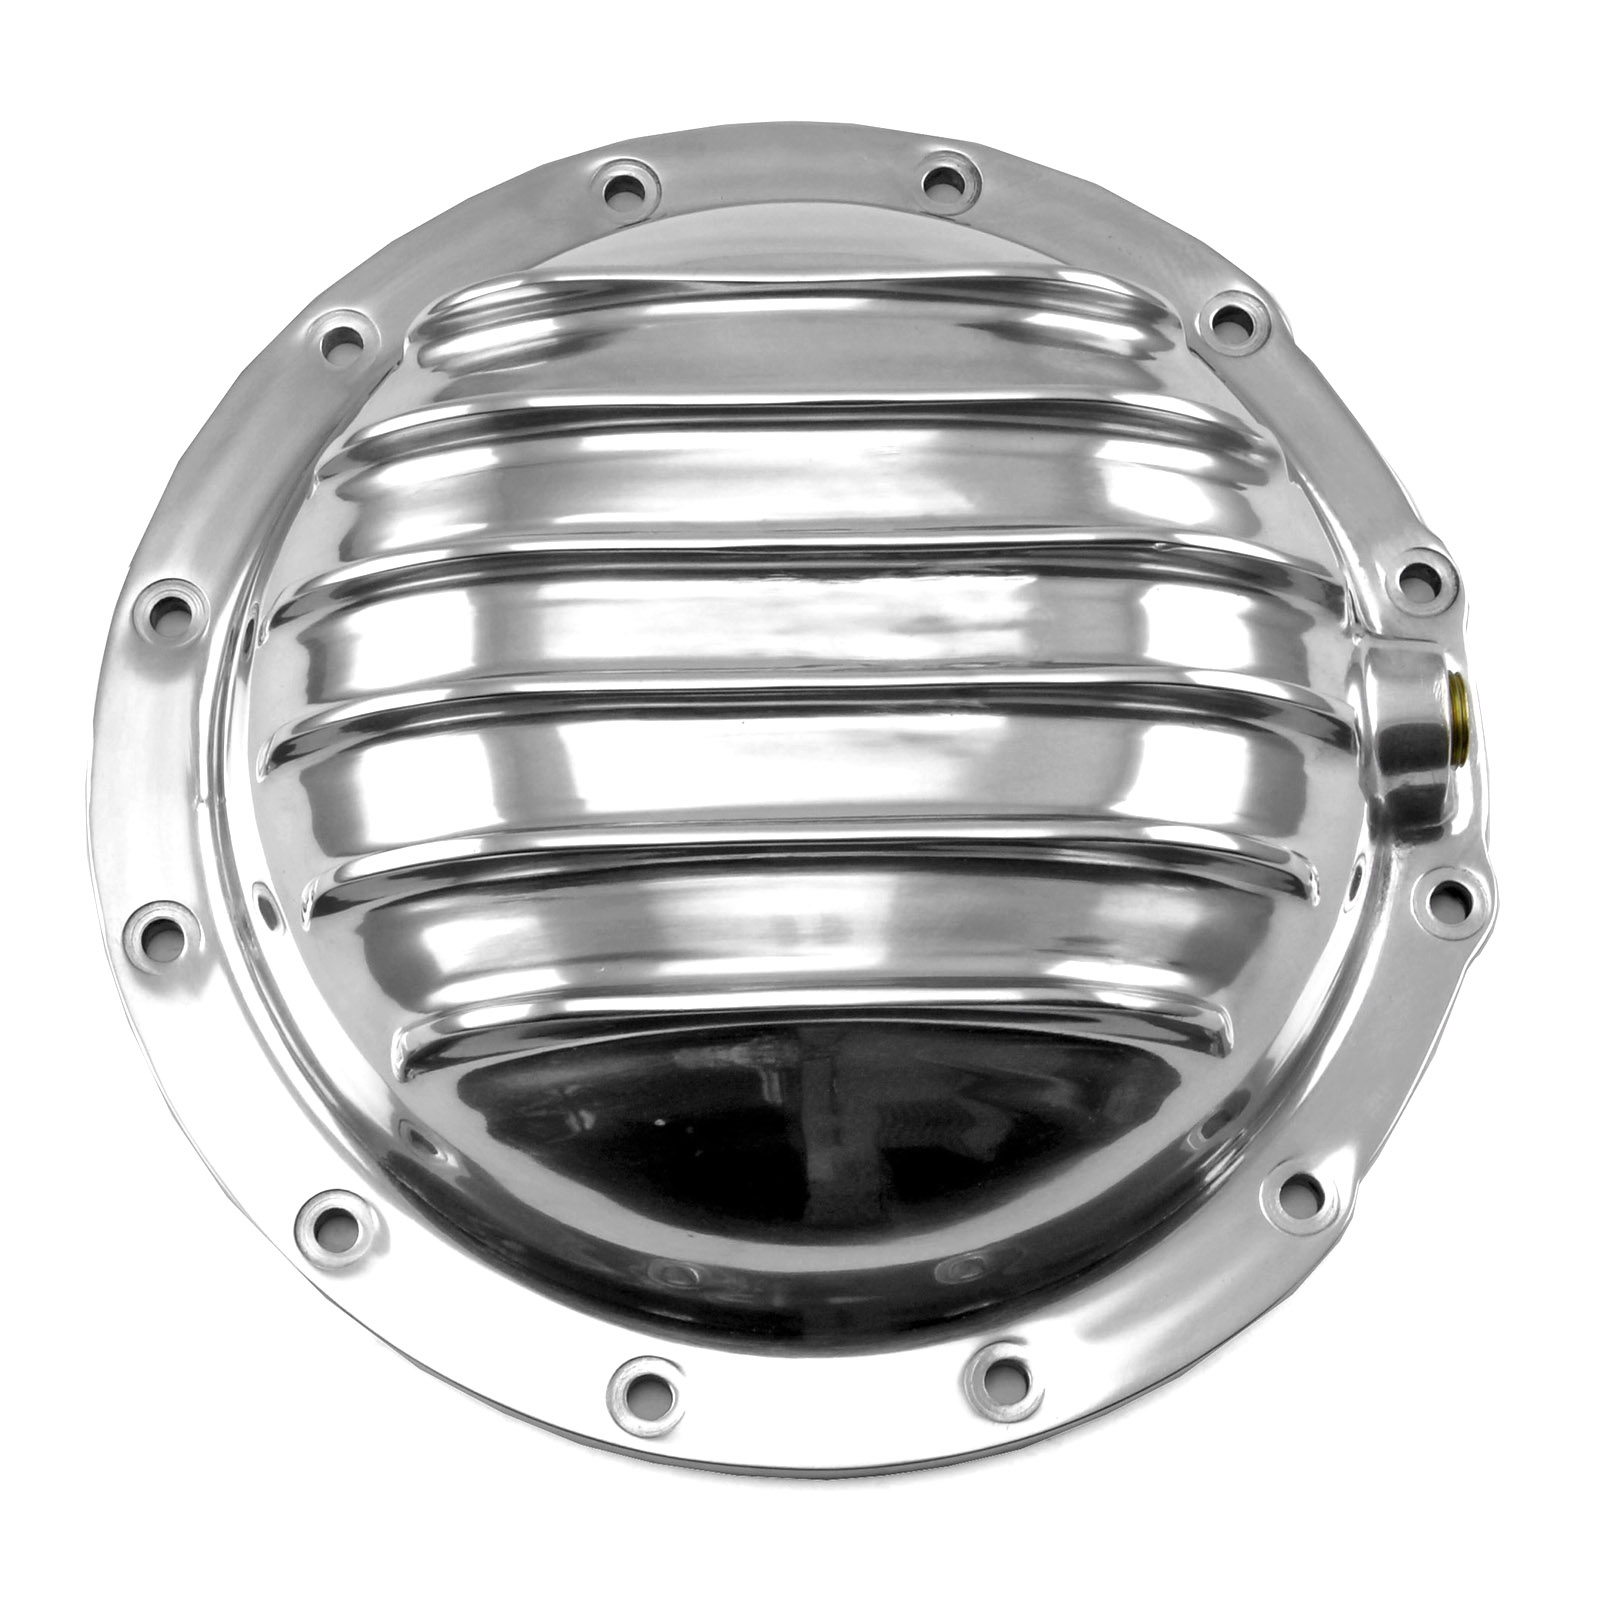 Amc Jeep CJ5 J10 M20 12 Bolt Polished Aluminum Rear End Differential Rear Cover